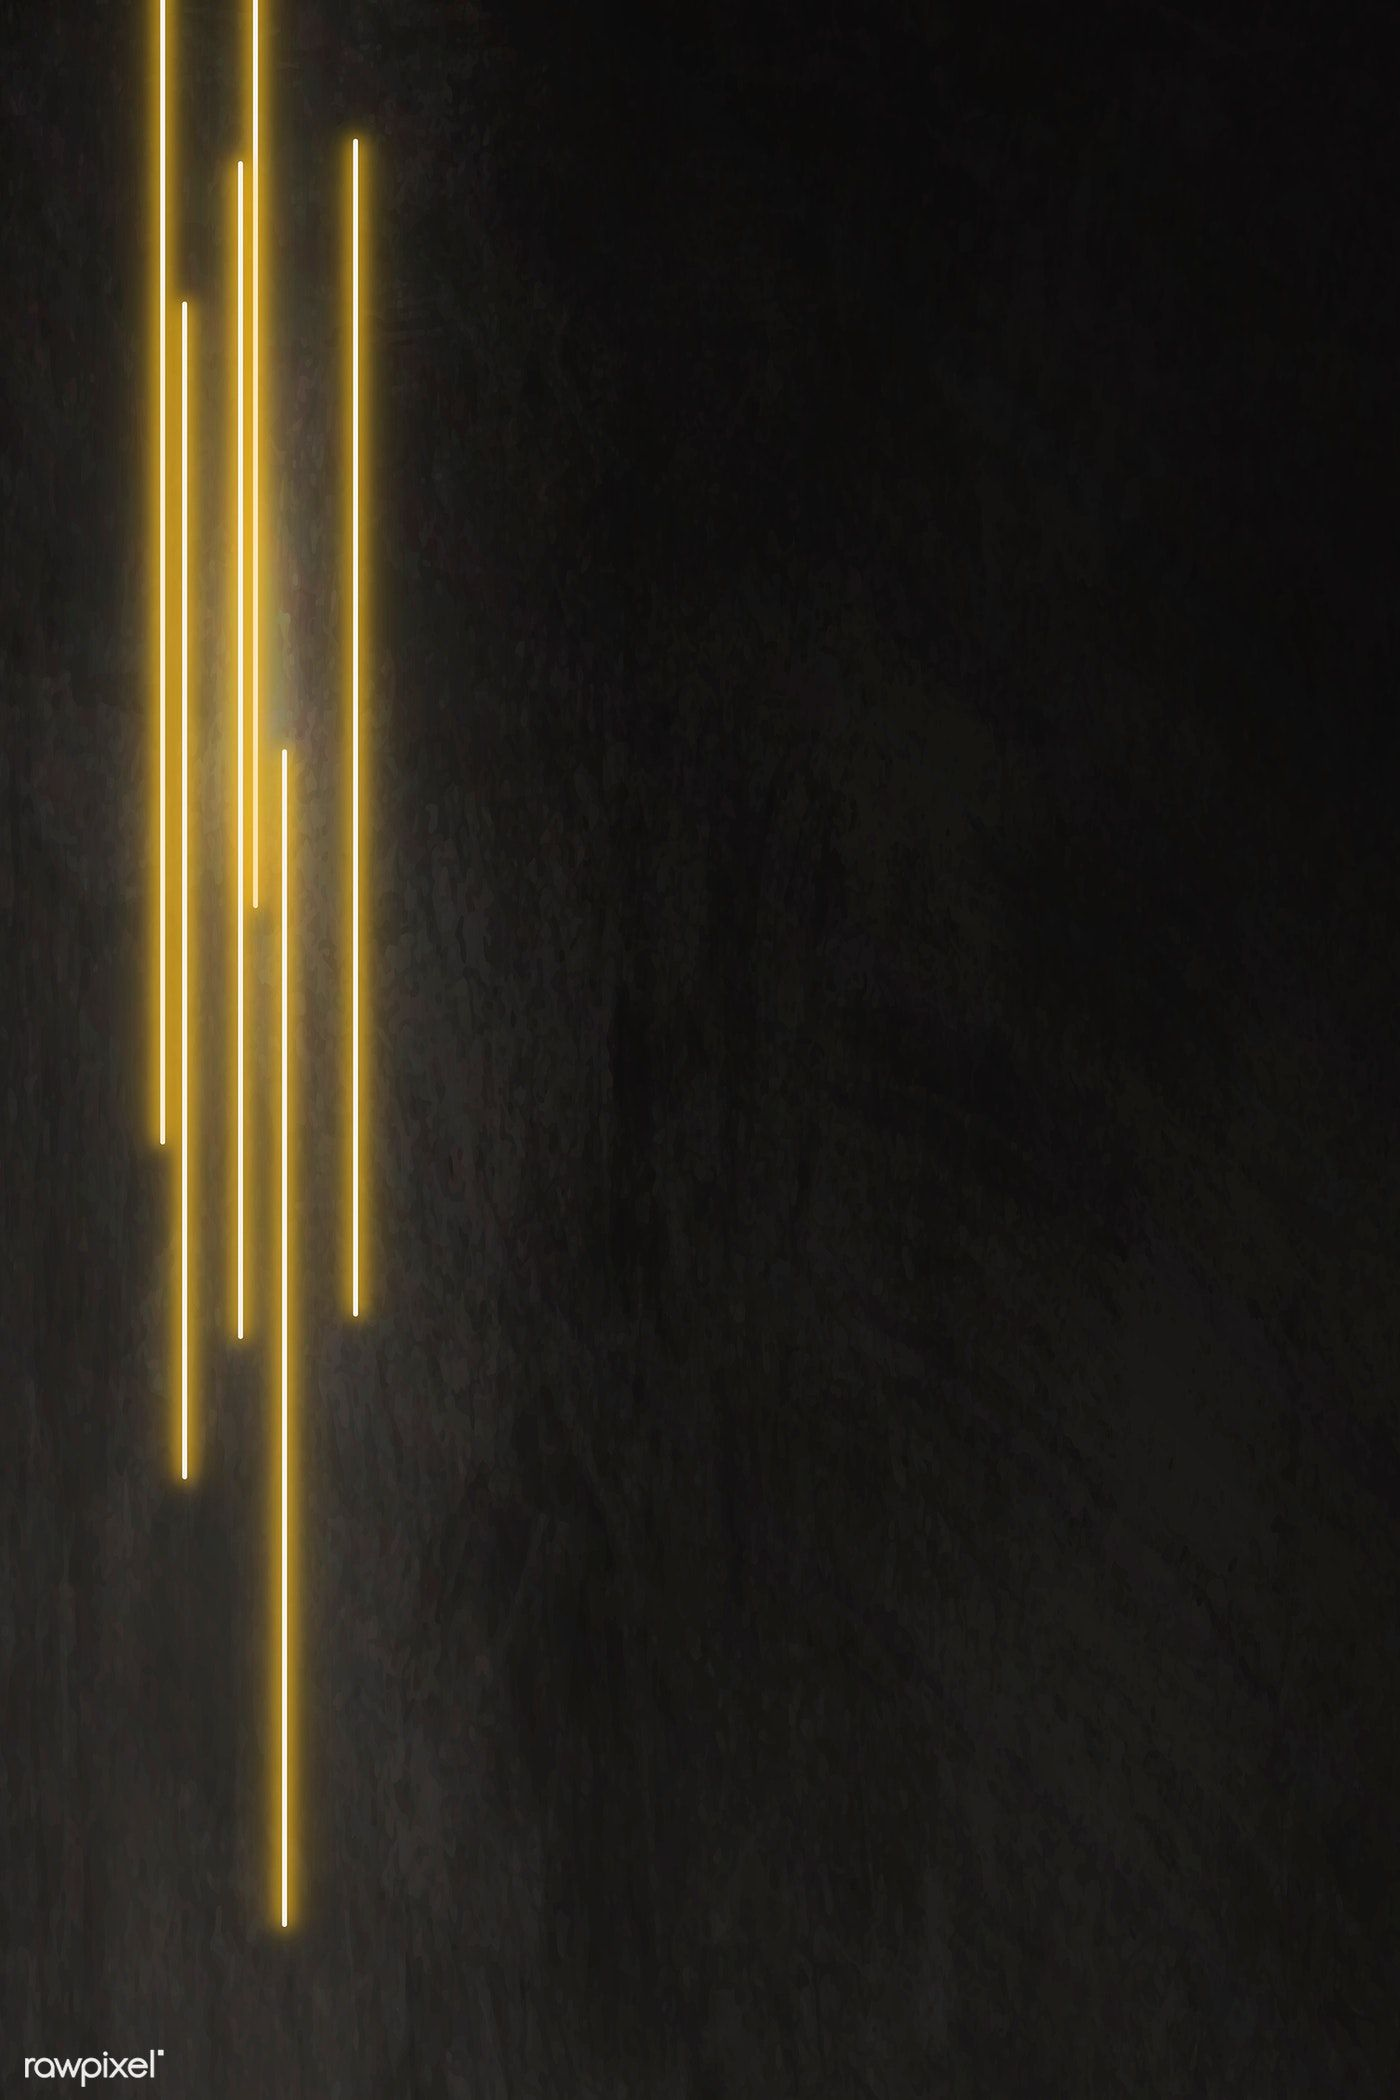 Yellow Glowing Lines On Black Background Vector Premium Image By Rawpixel Com Aew Gold Wallpaper Hd Black Background Wallpaper Black Background Images